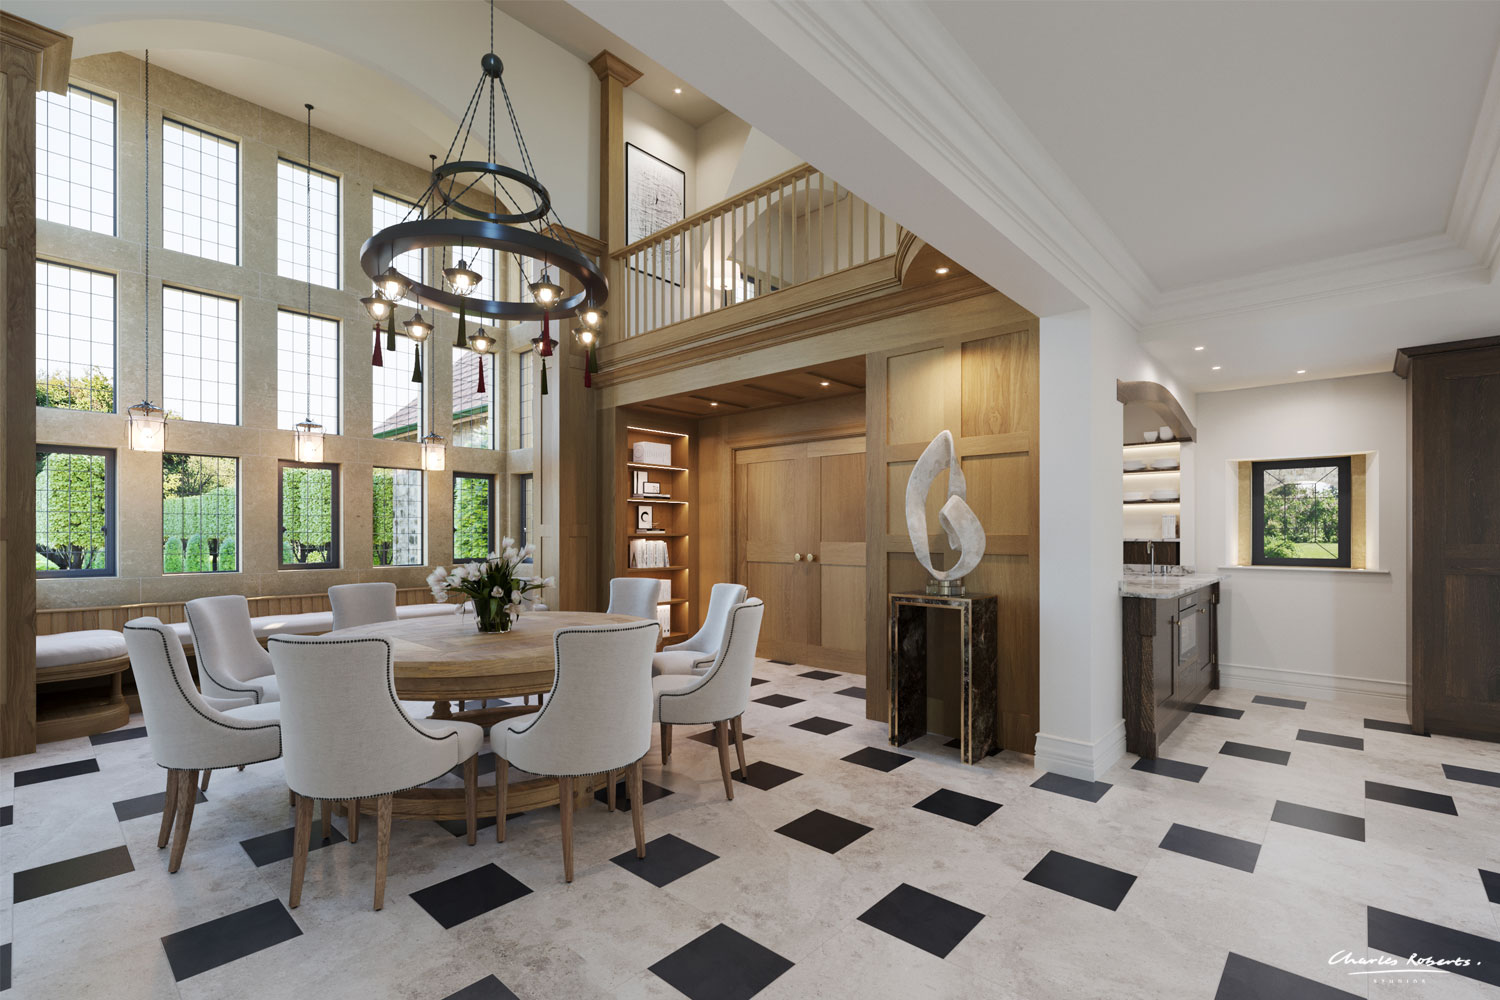 Interior-CGI-of-a-new-arts-and-crafts-style-house-in-Surrey.jpg